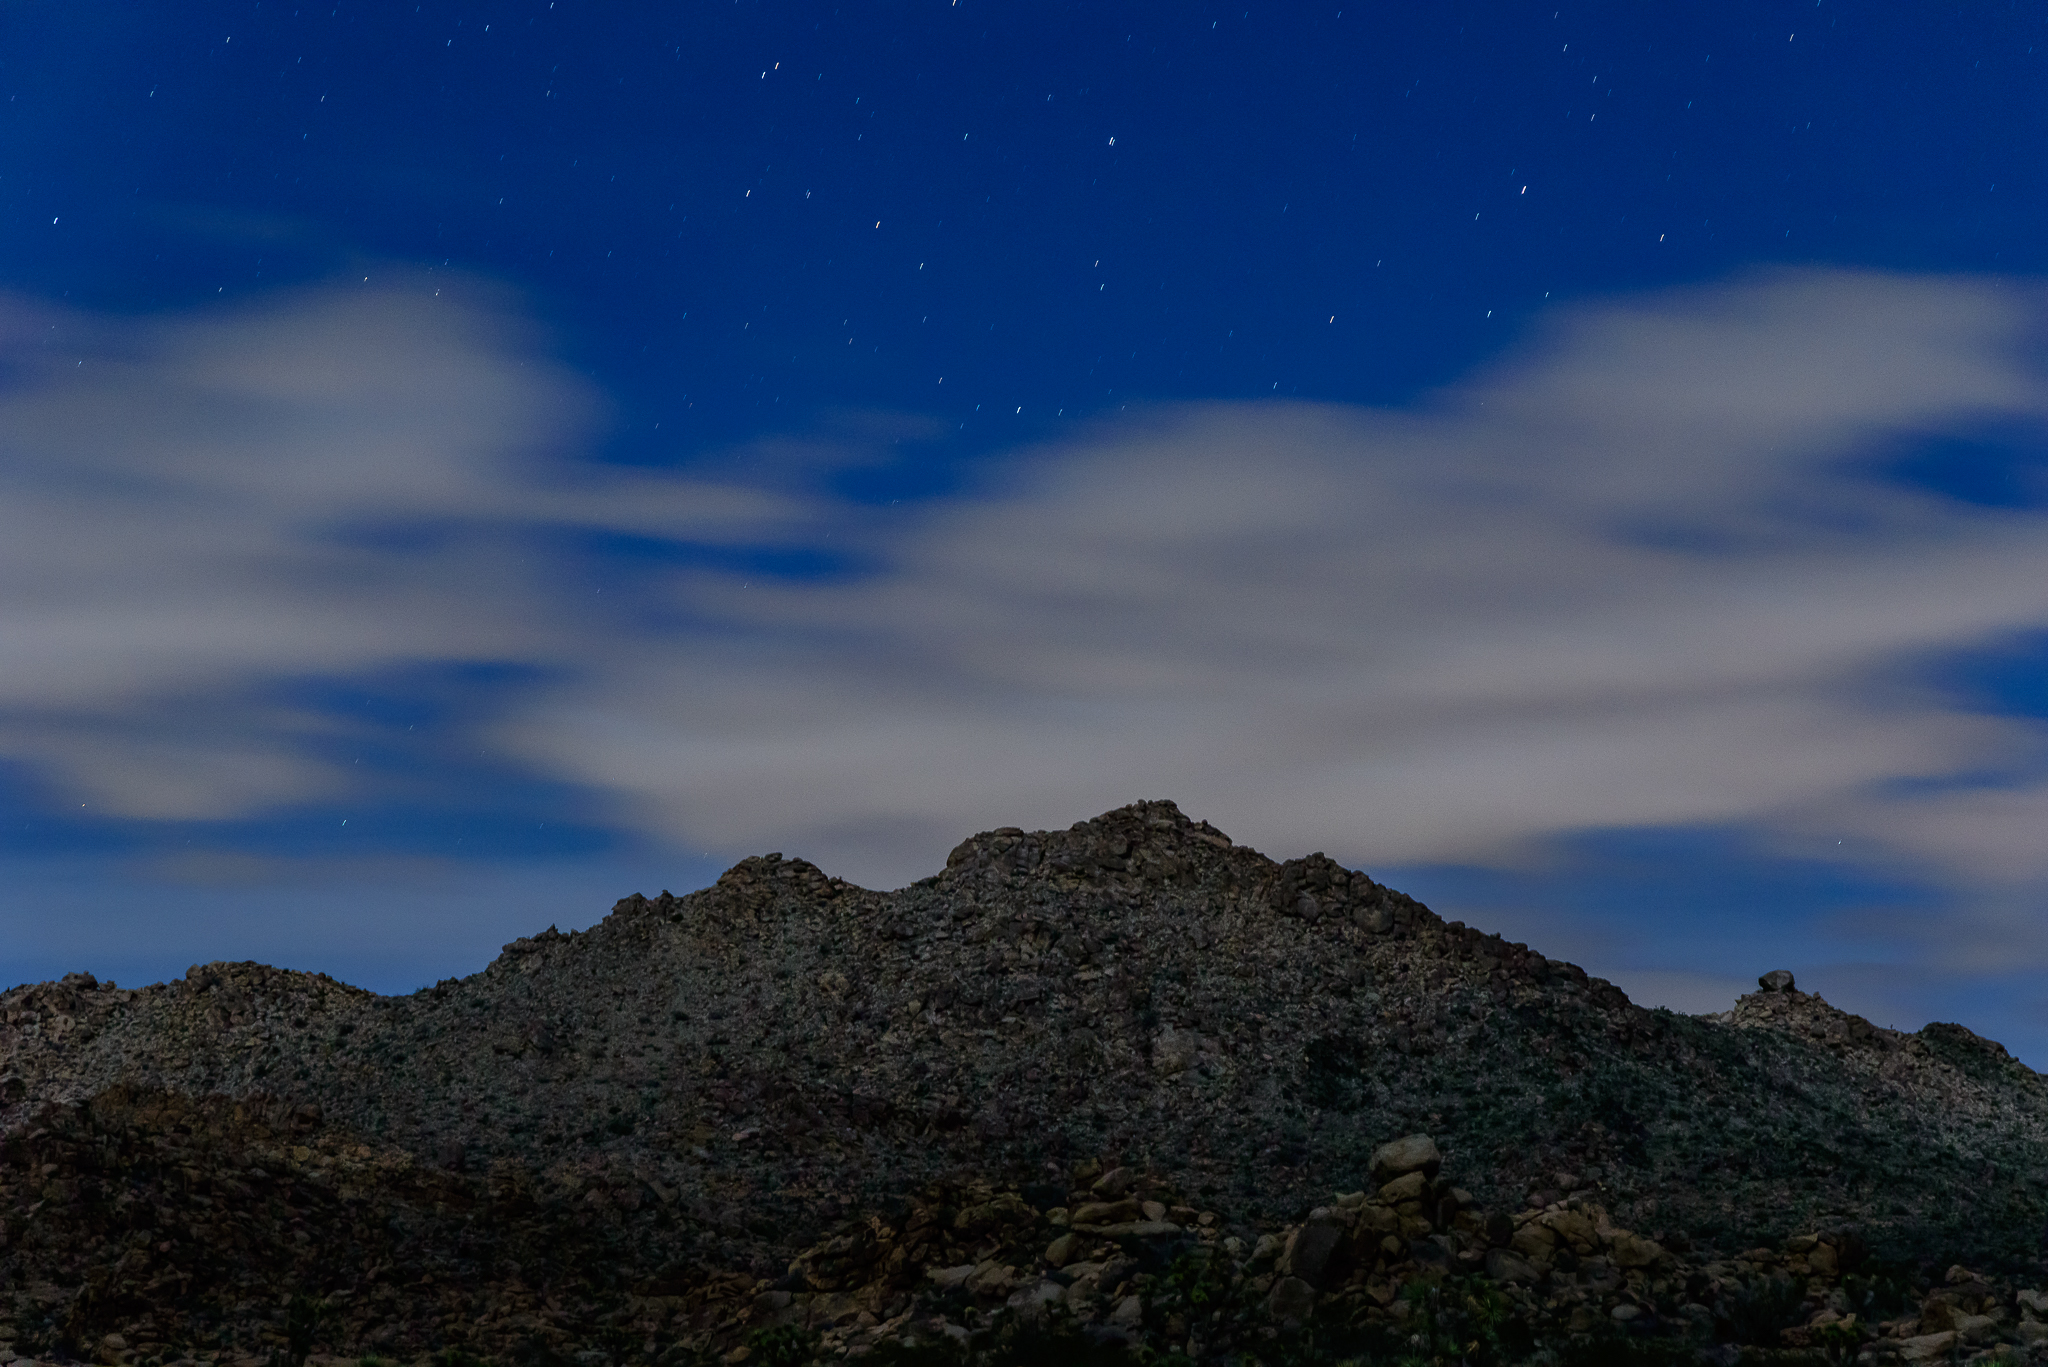 Moonlight dances between revealing and hiding layers of earth. Joshua Tree National Park, CA.